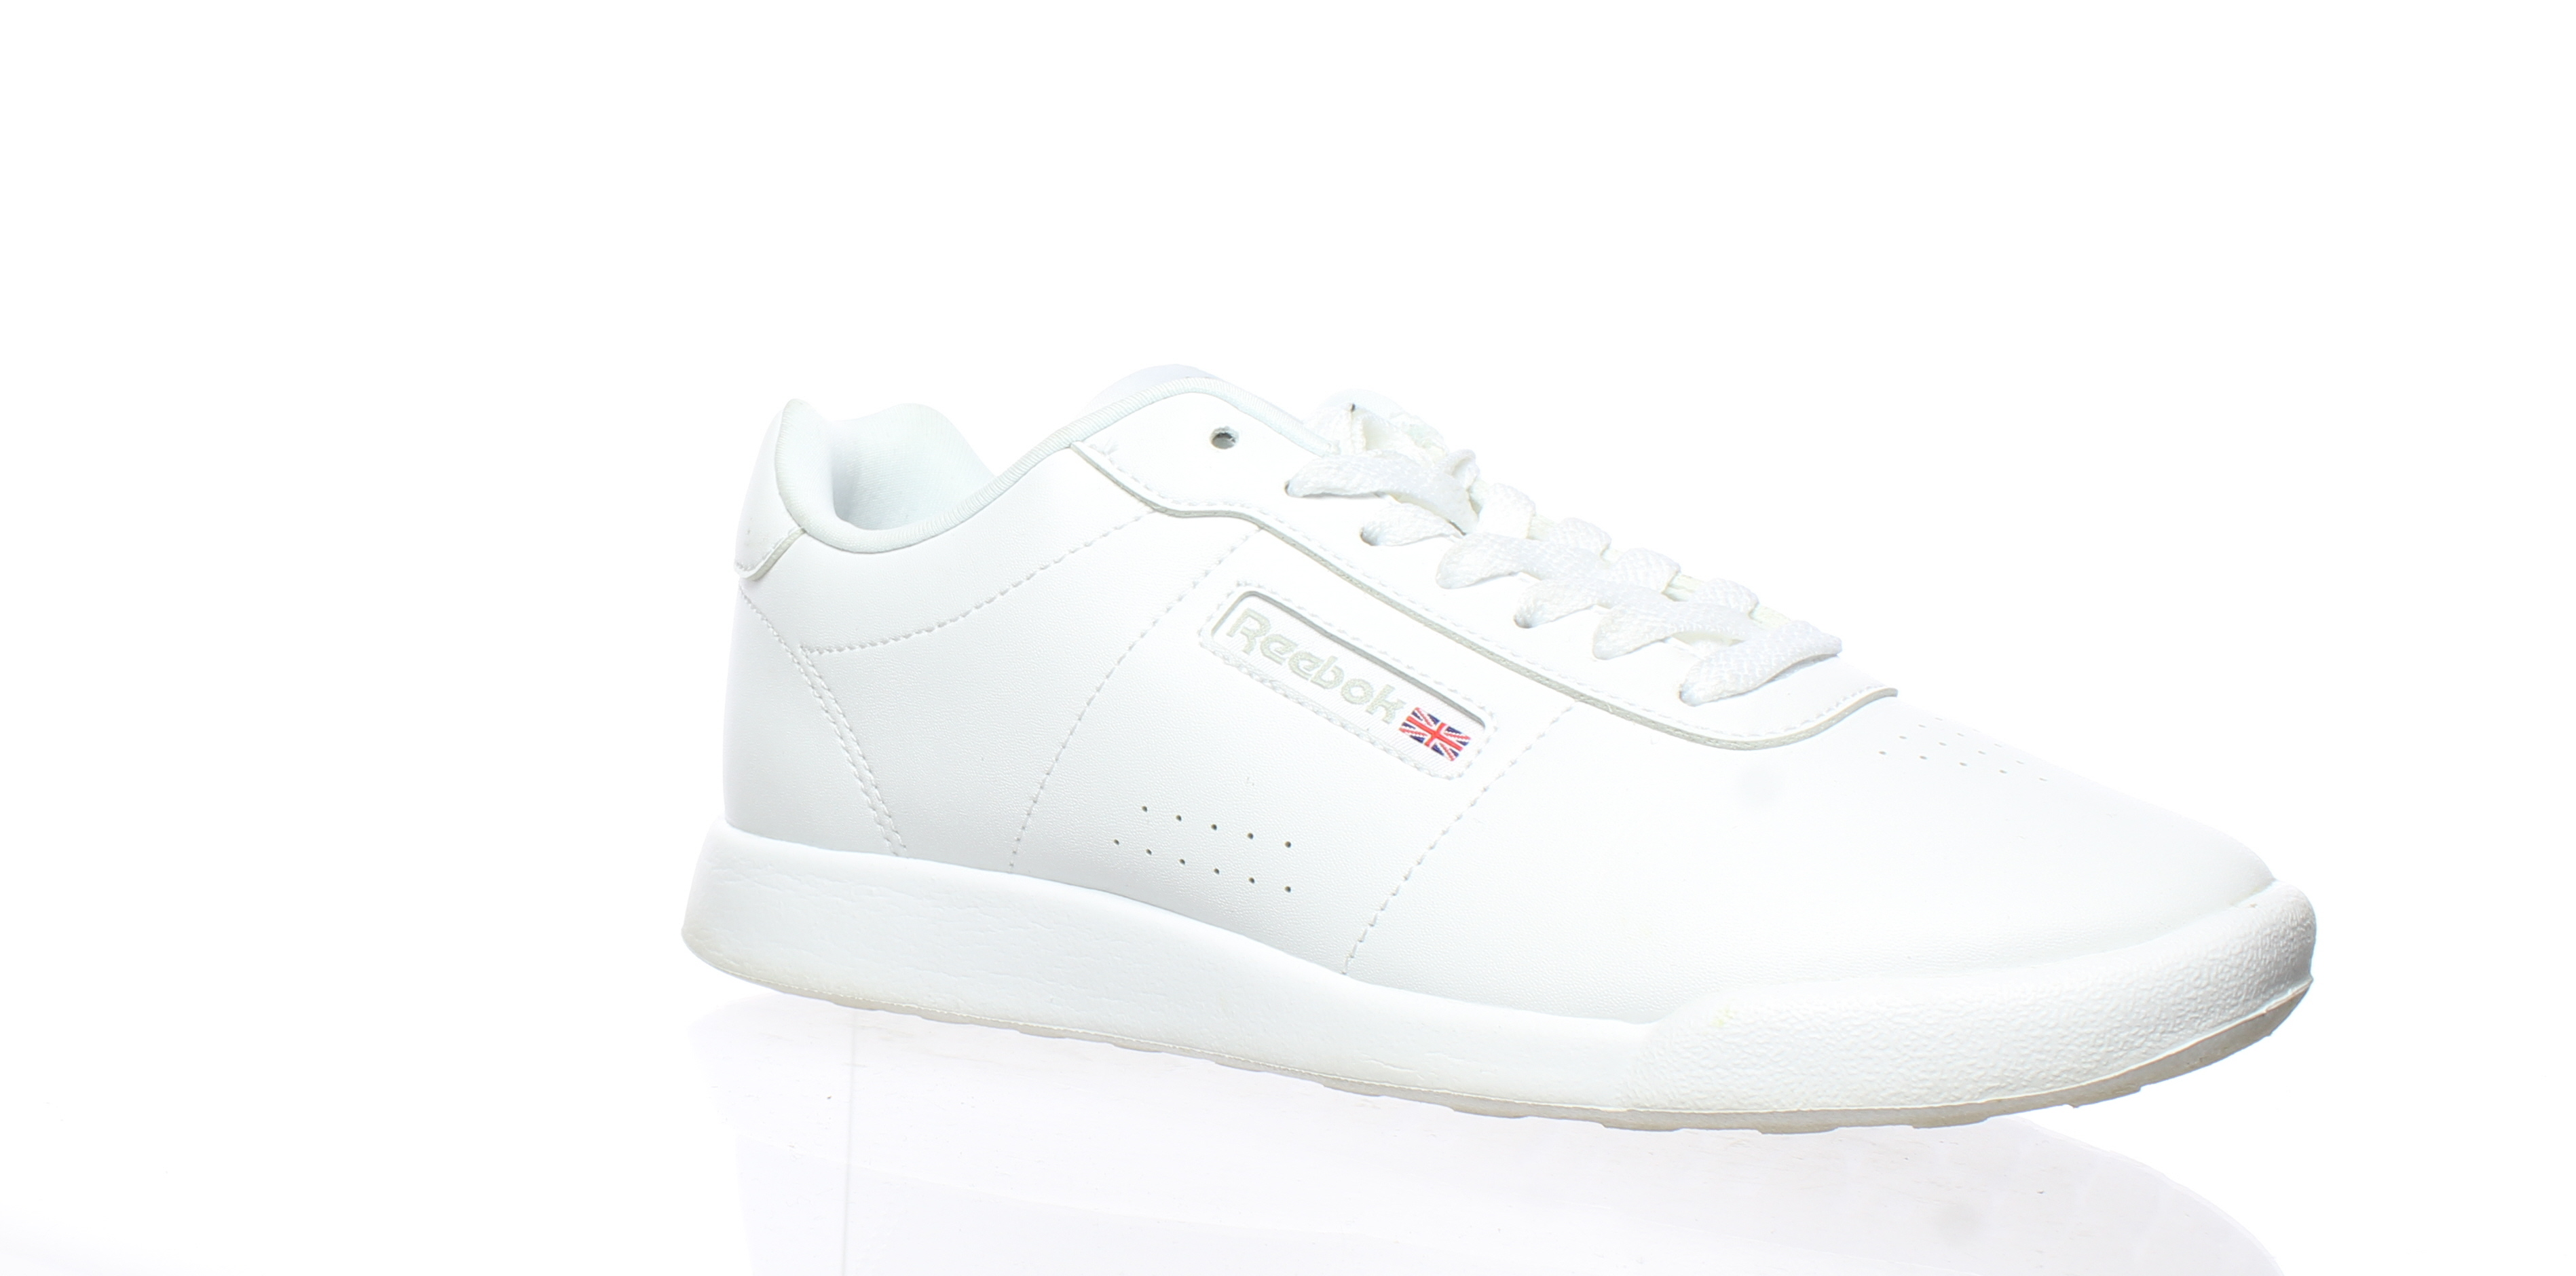 f3bd048b91e618 Details about Reebok Womens Princess Lite White Fashion Sneaker Size 7  (174041)